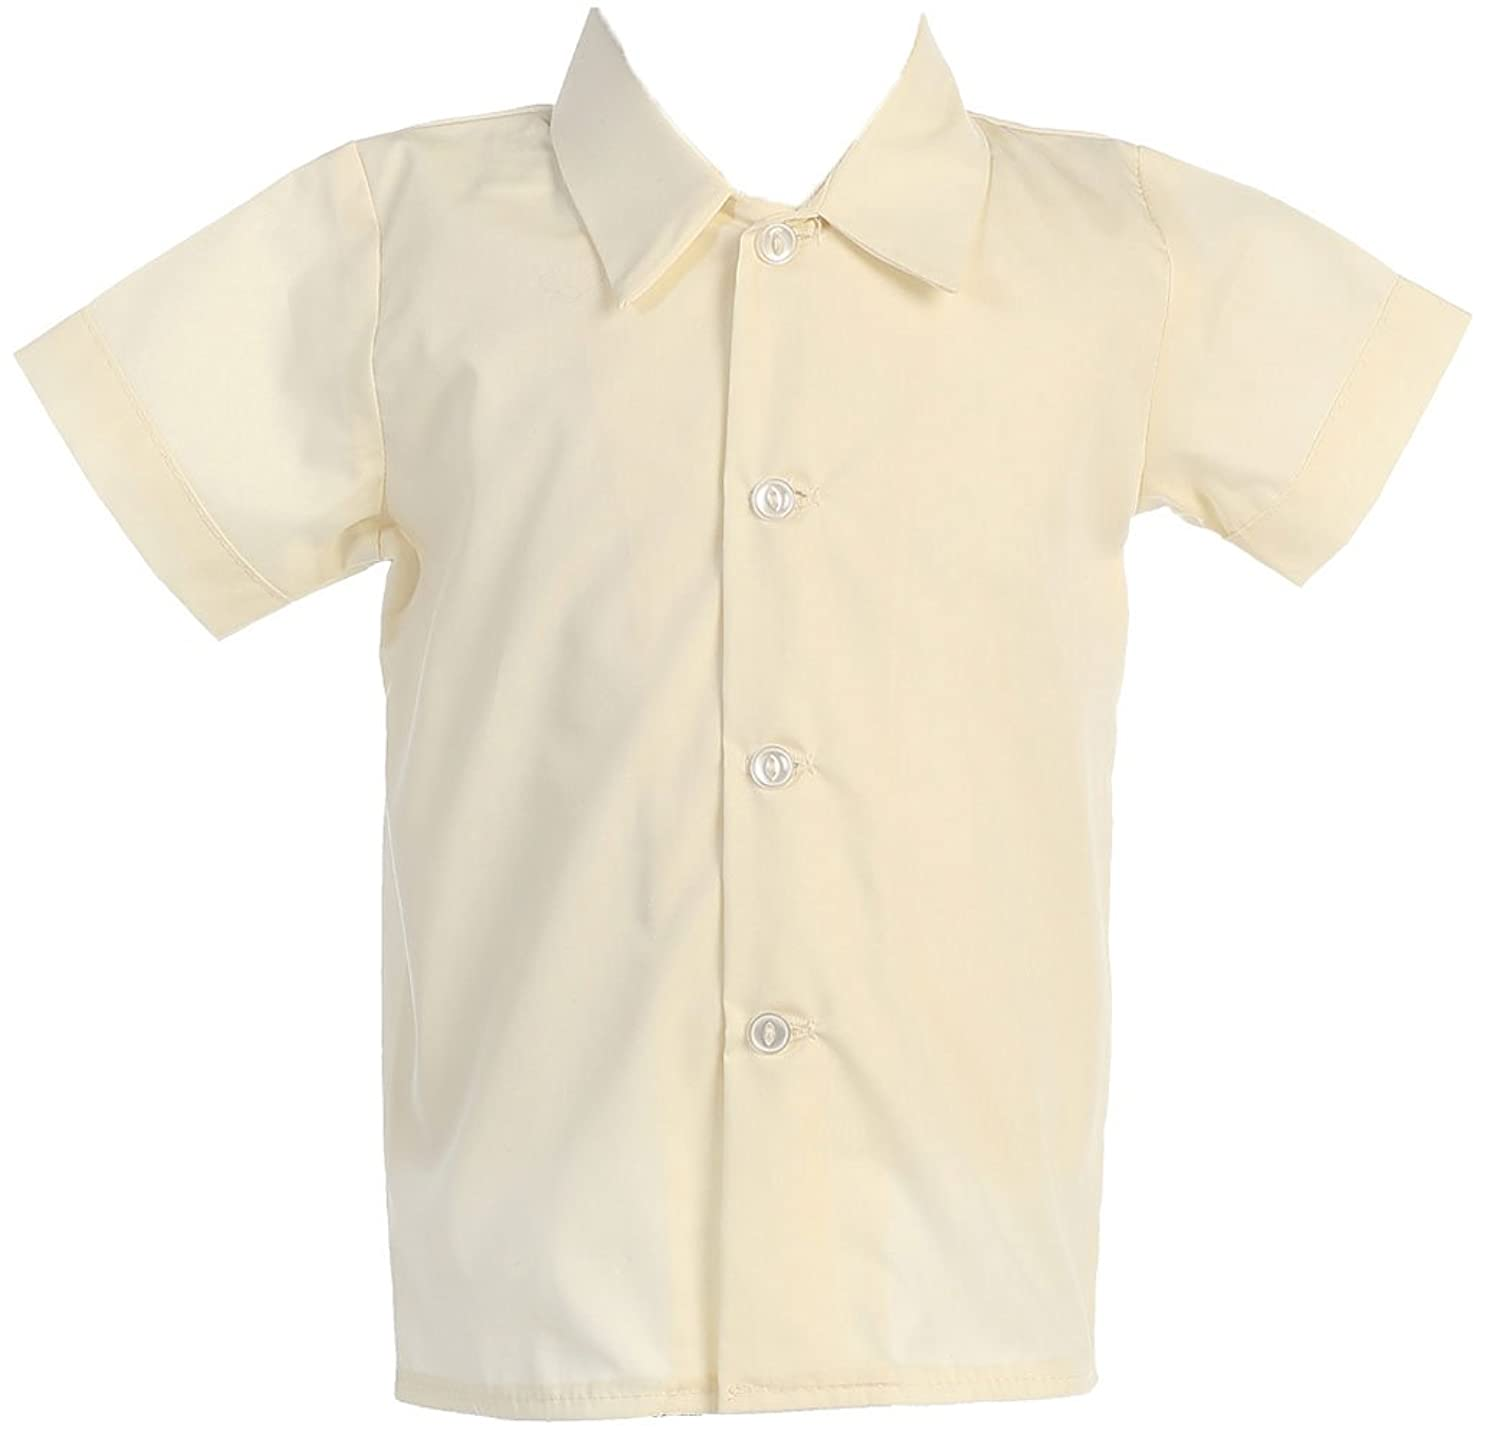 Amazon.com: Lito Baby-boys Short Sleeved Dress Shirt: Infant And ...